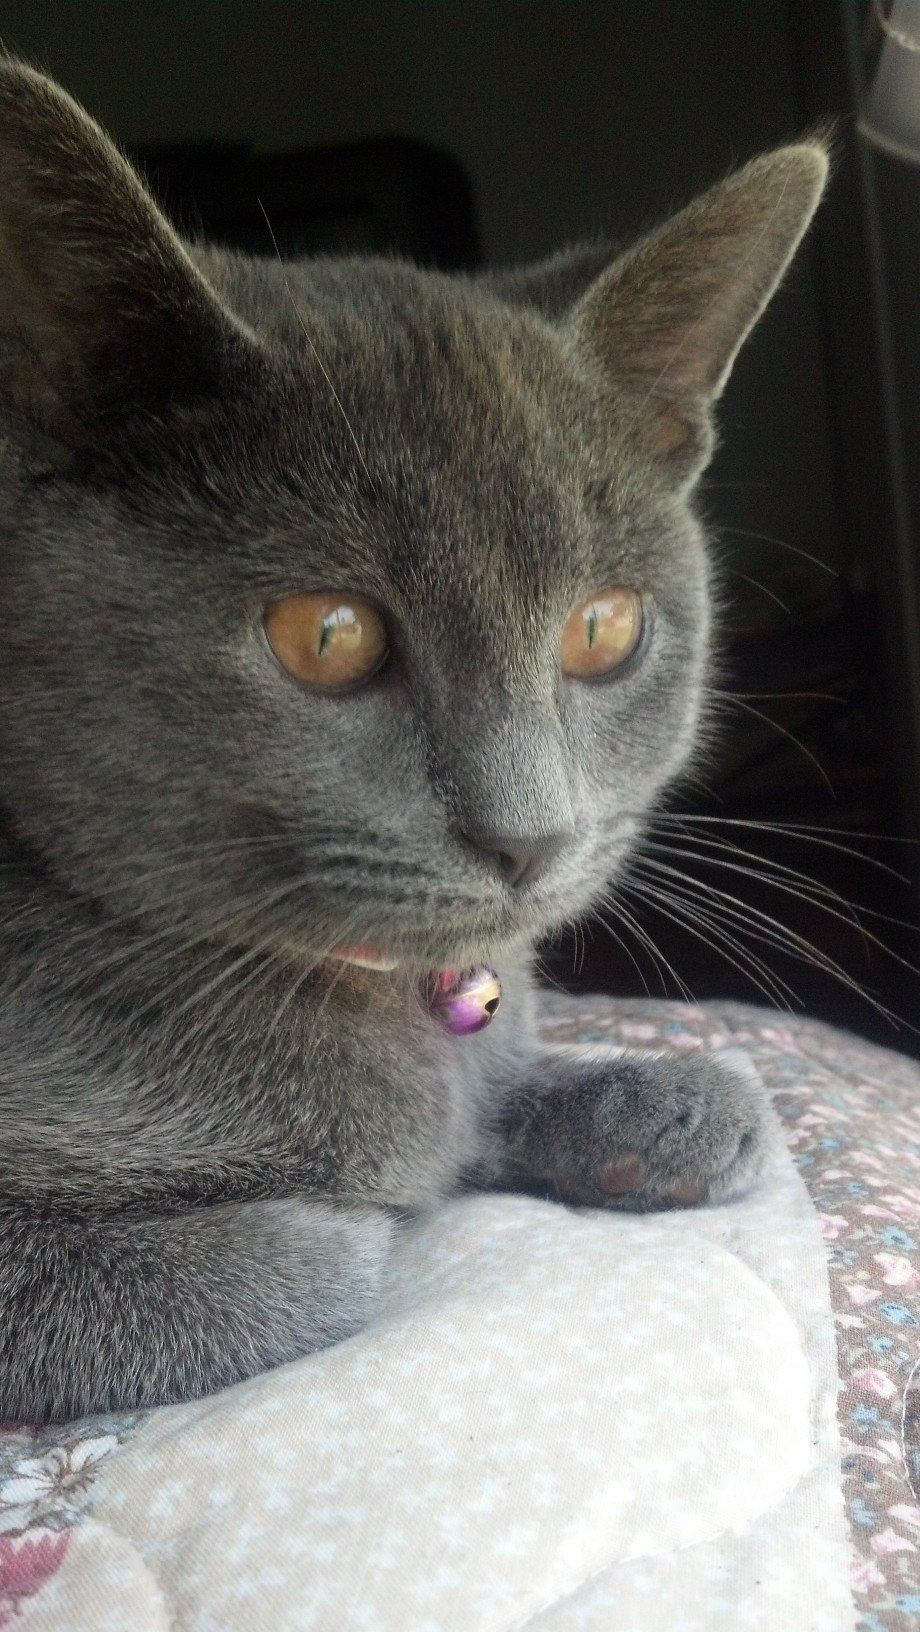 My Blue Russian Tabby mix kitten that I rescued from the shelter